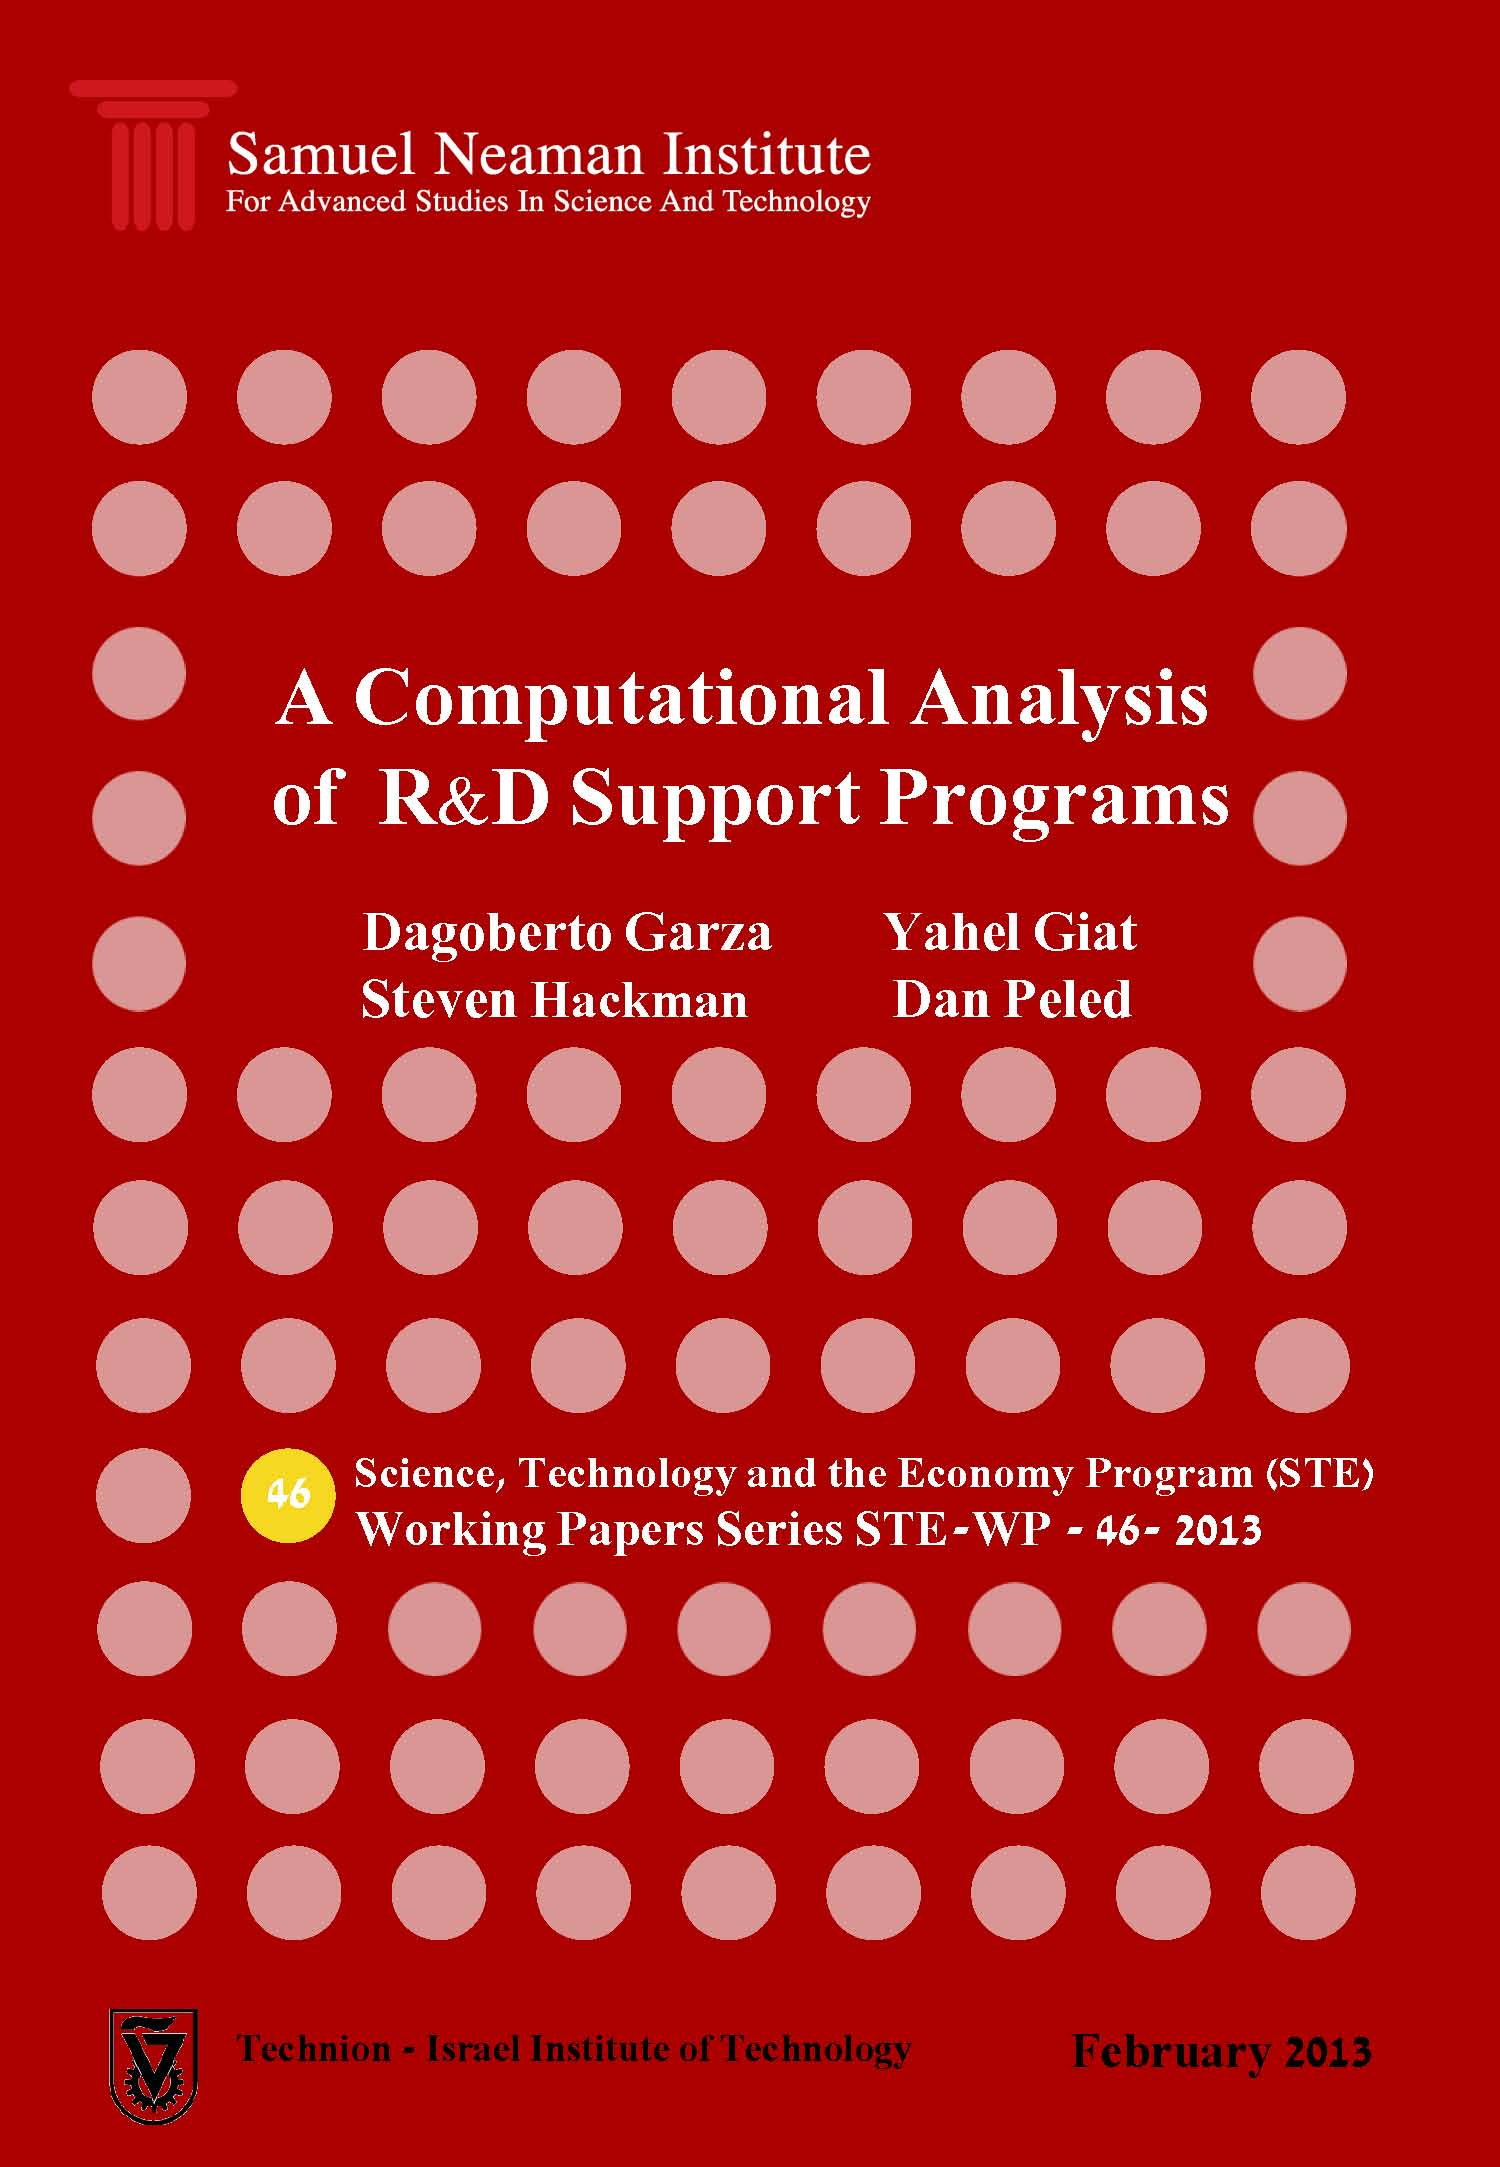 A Computational Analysis of R&D Support Programs